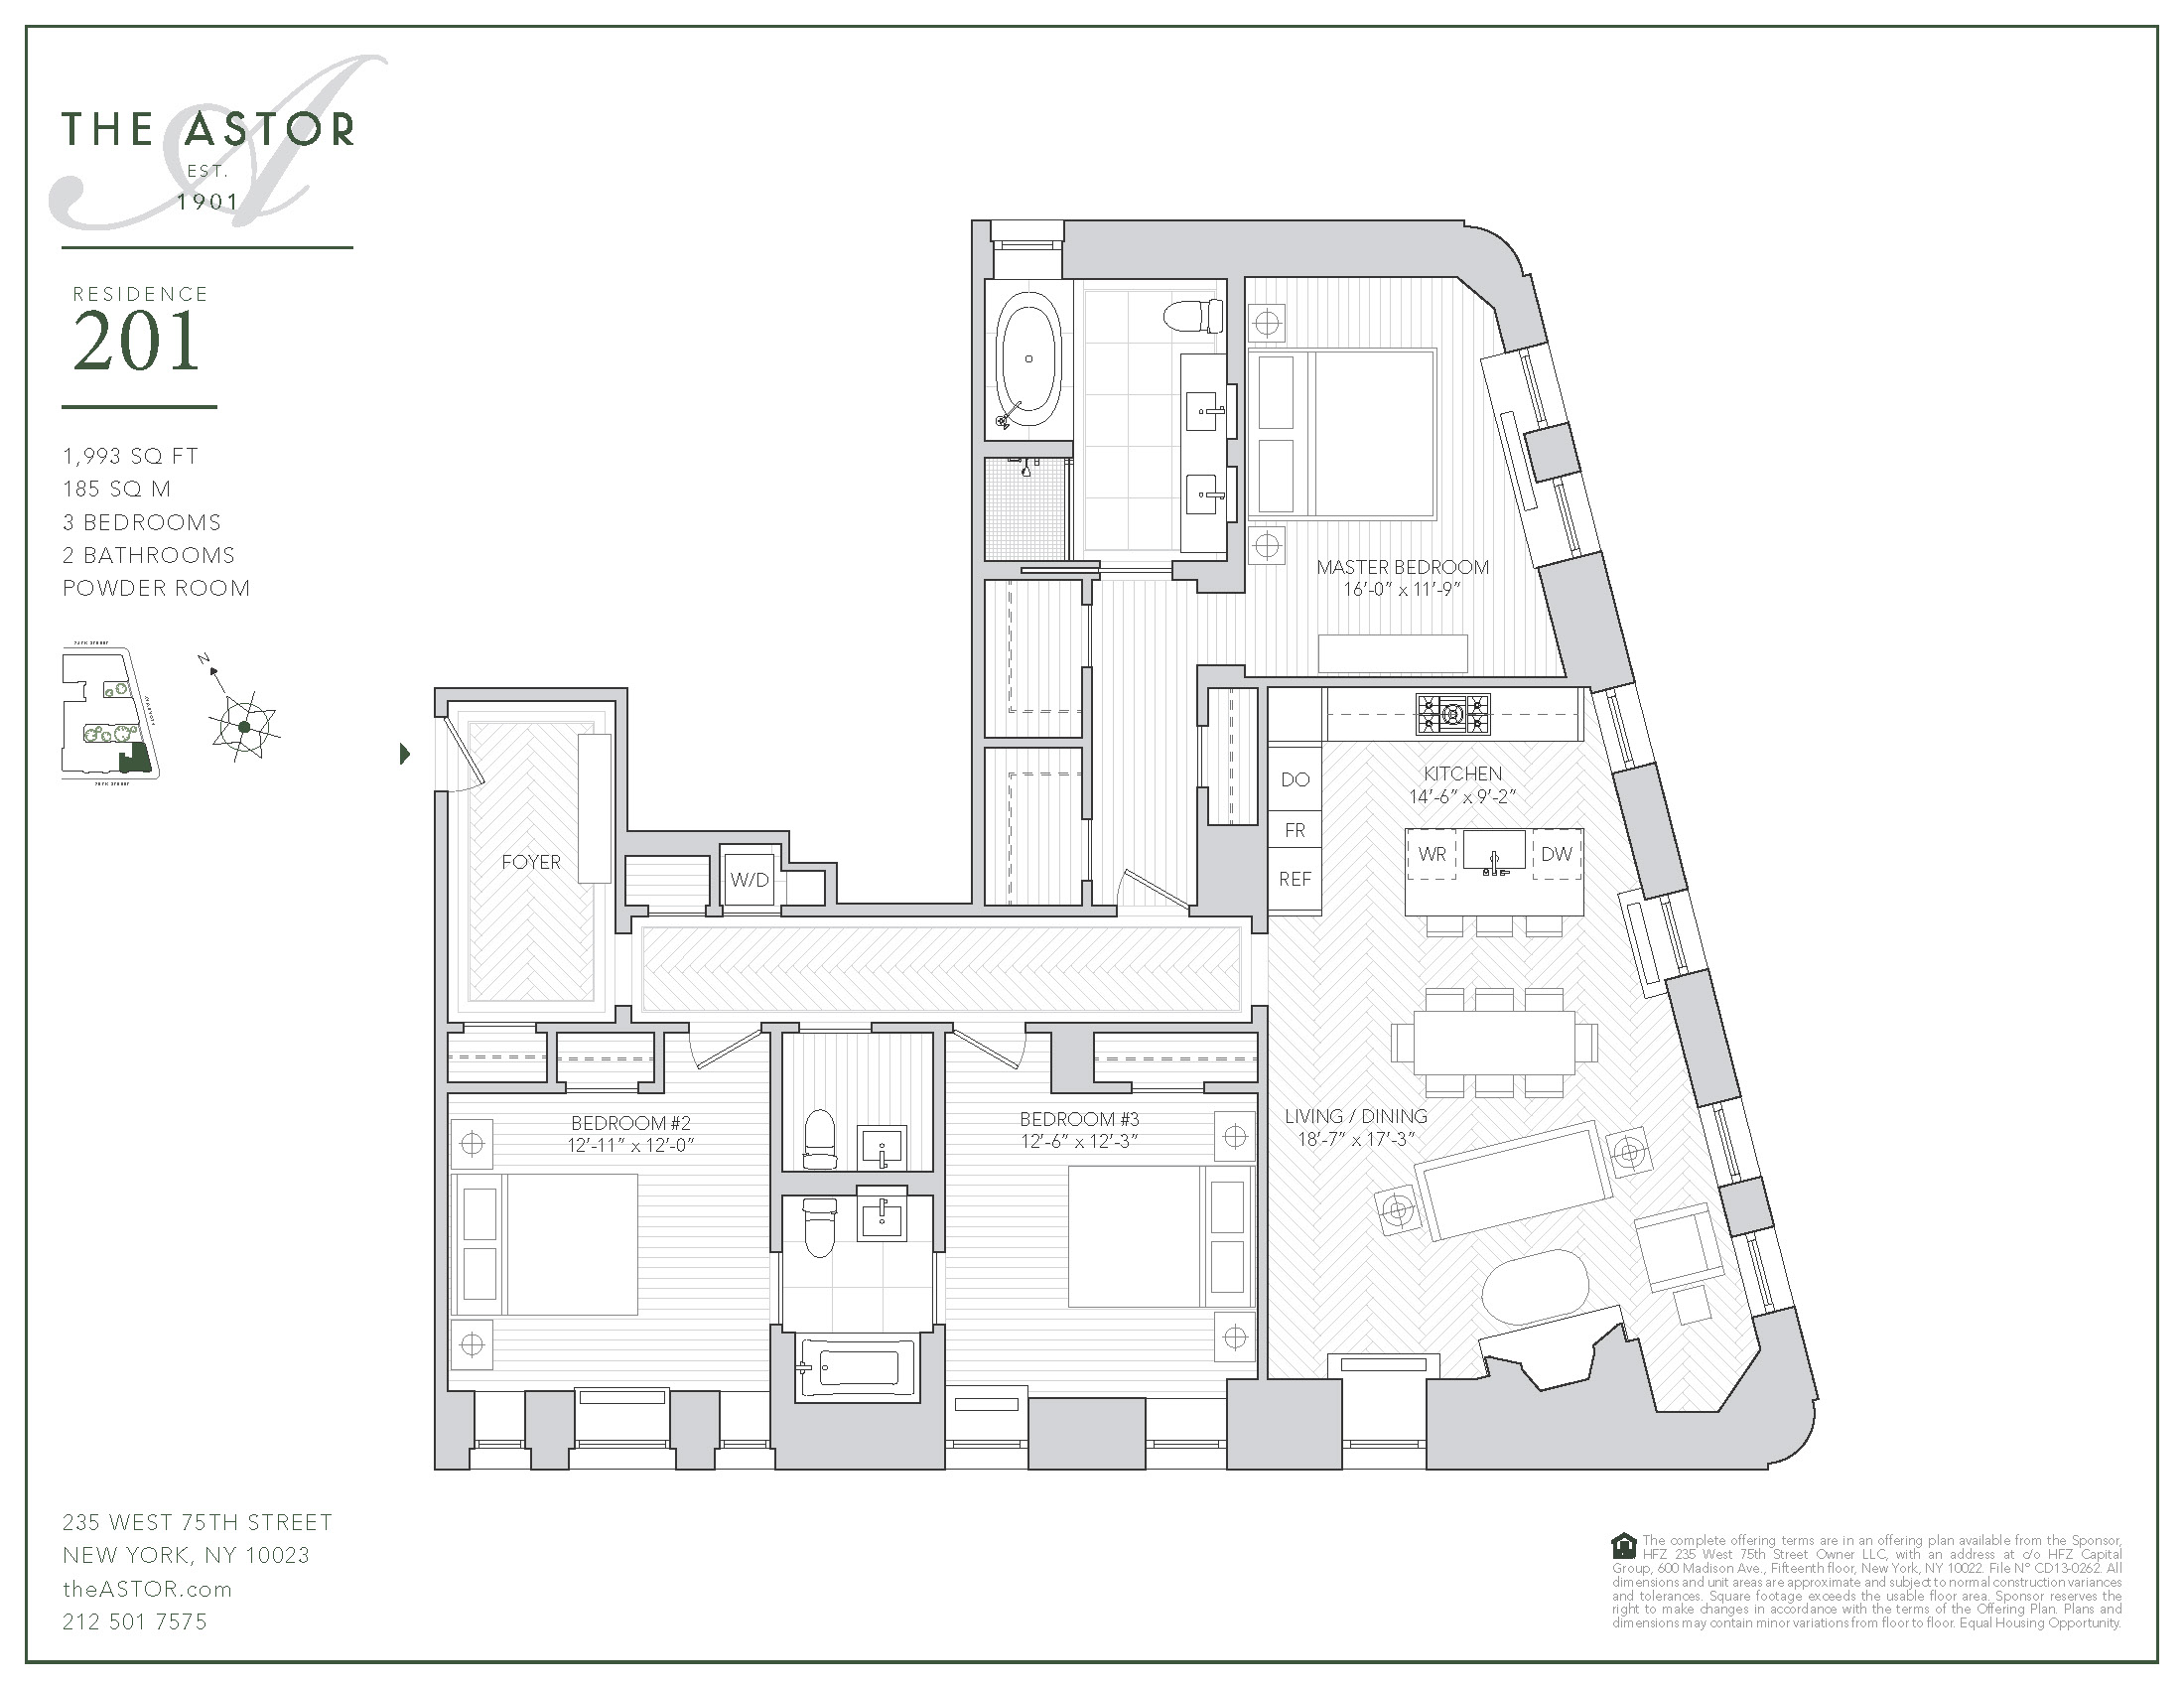 Floor plan of The Astor, 235 West 75th St, 201 - Upper West Side, New York